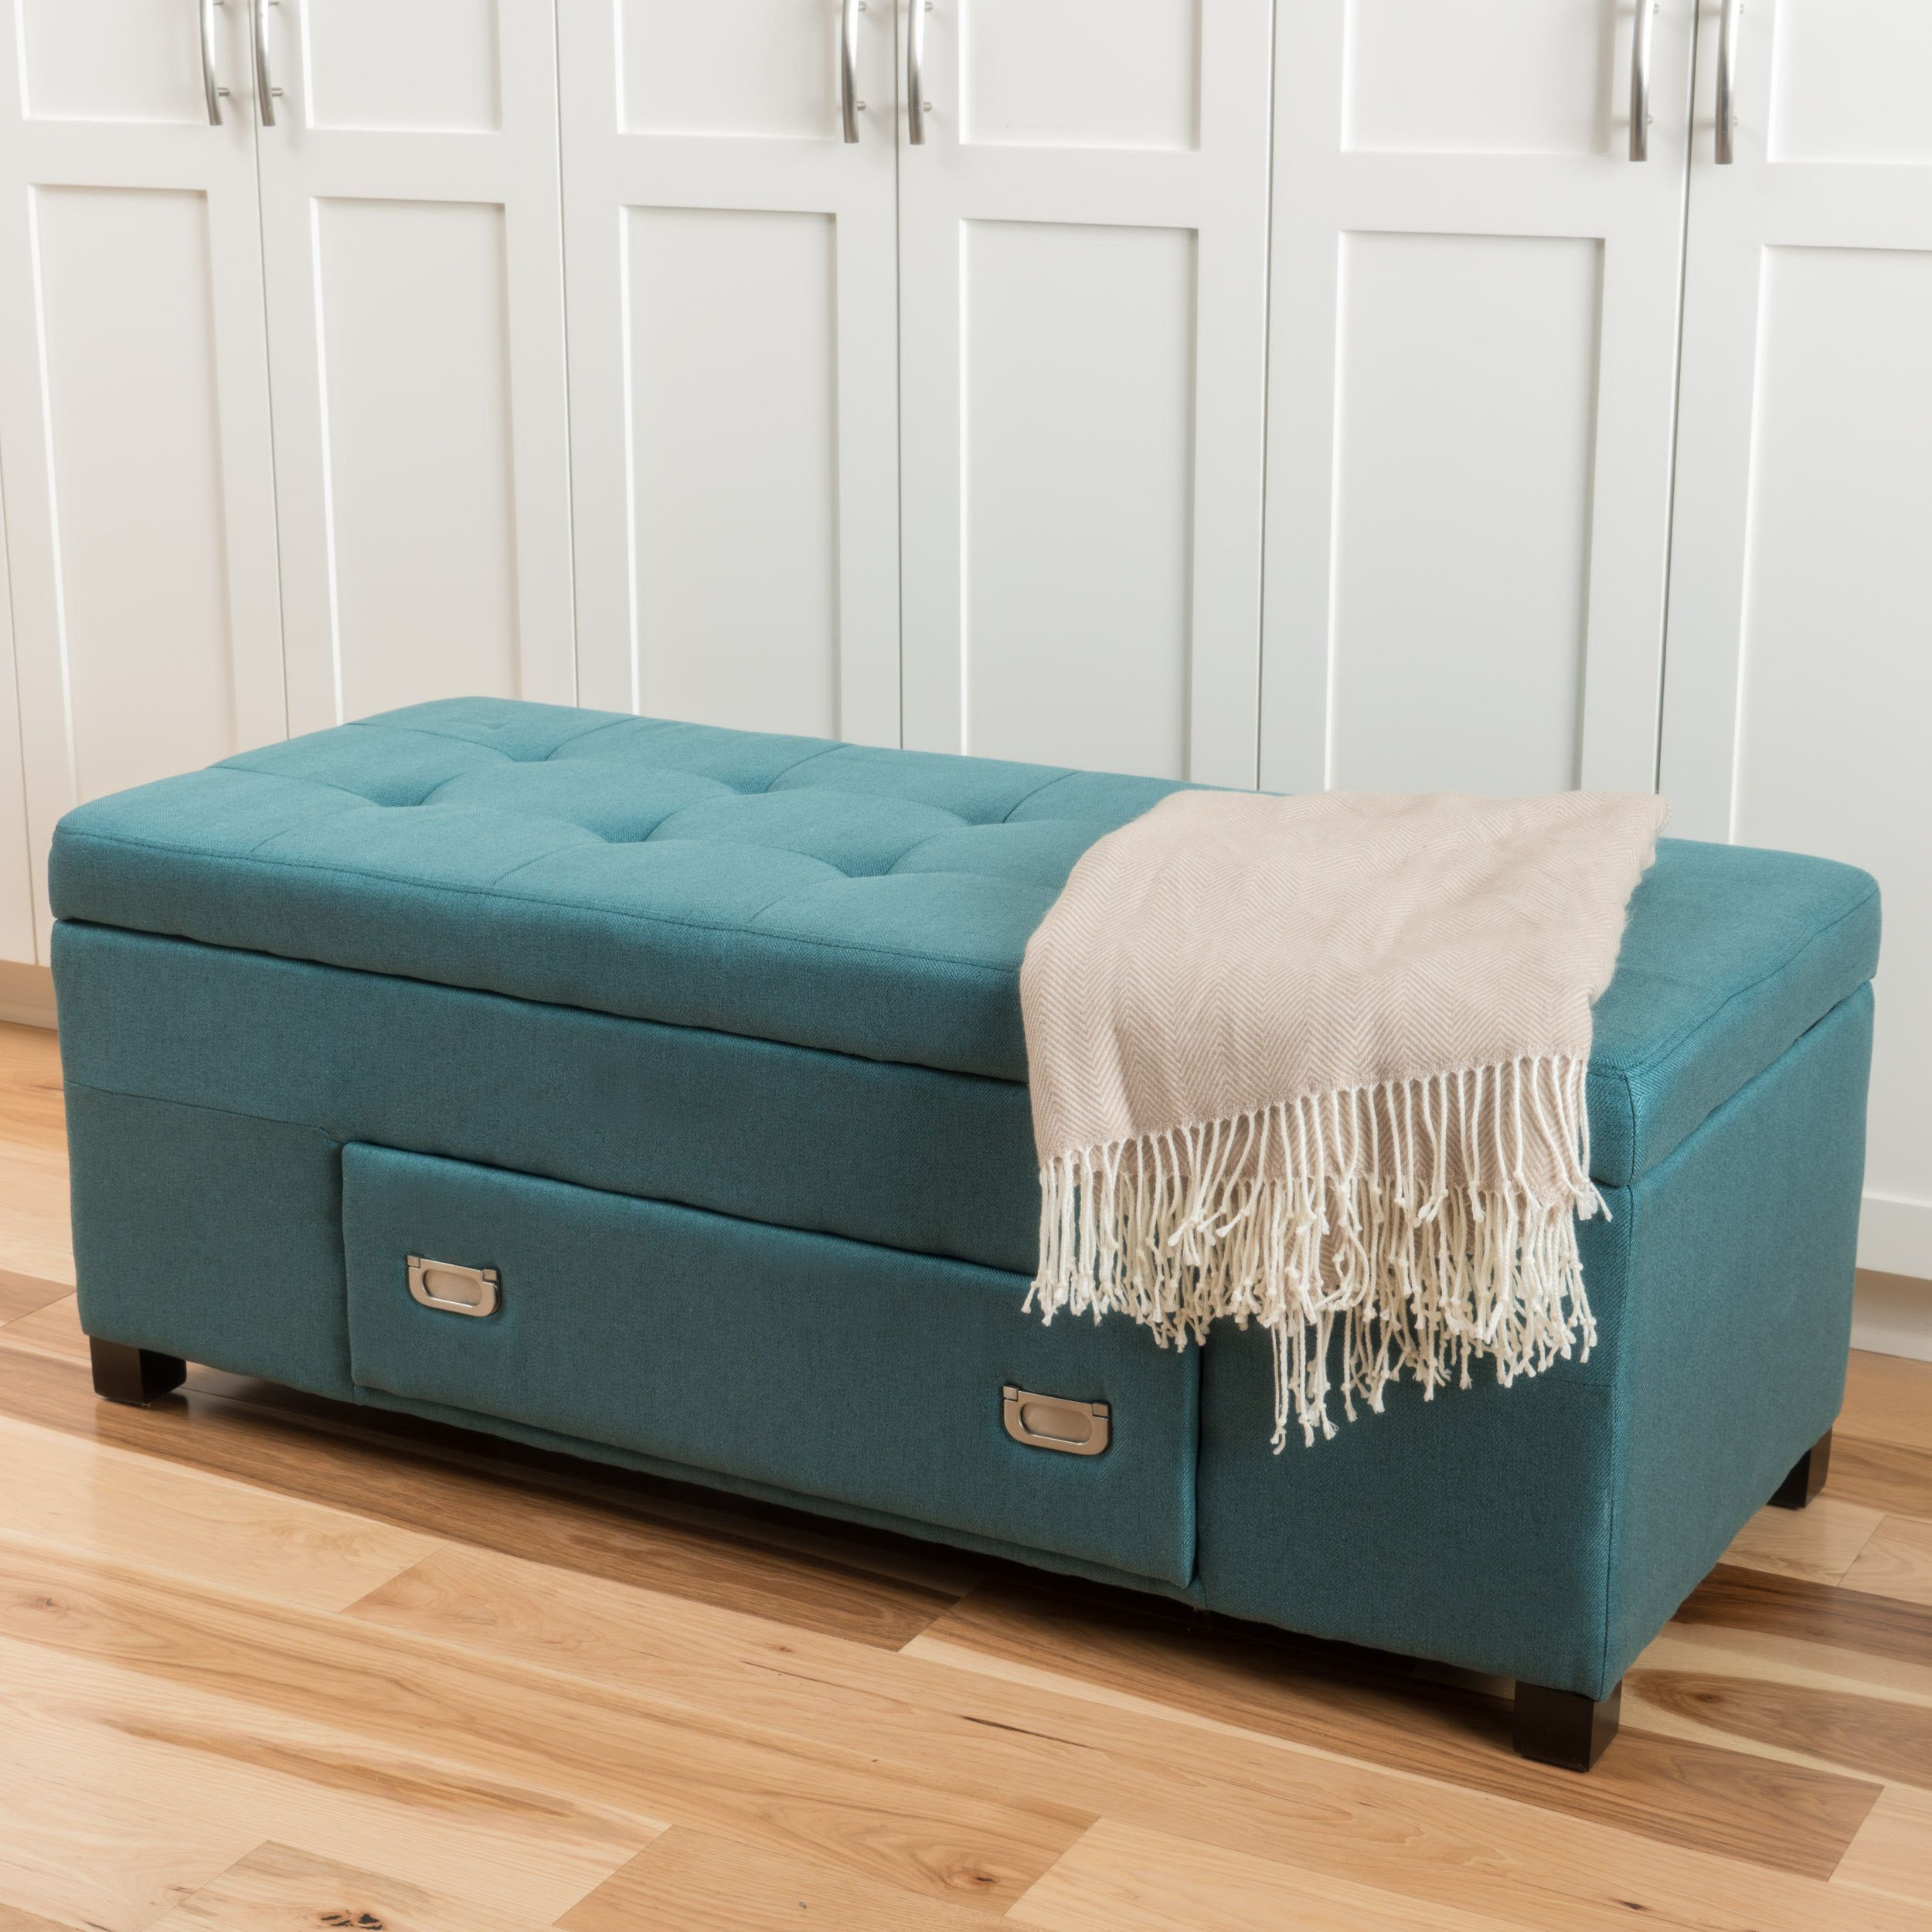 ottoman for living room%0A Ramona Tufted Fabric Storage Ottoman with Drawer